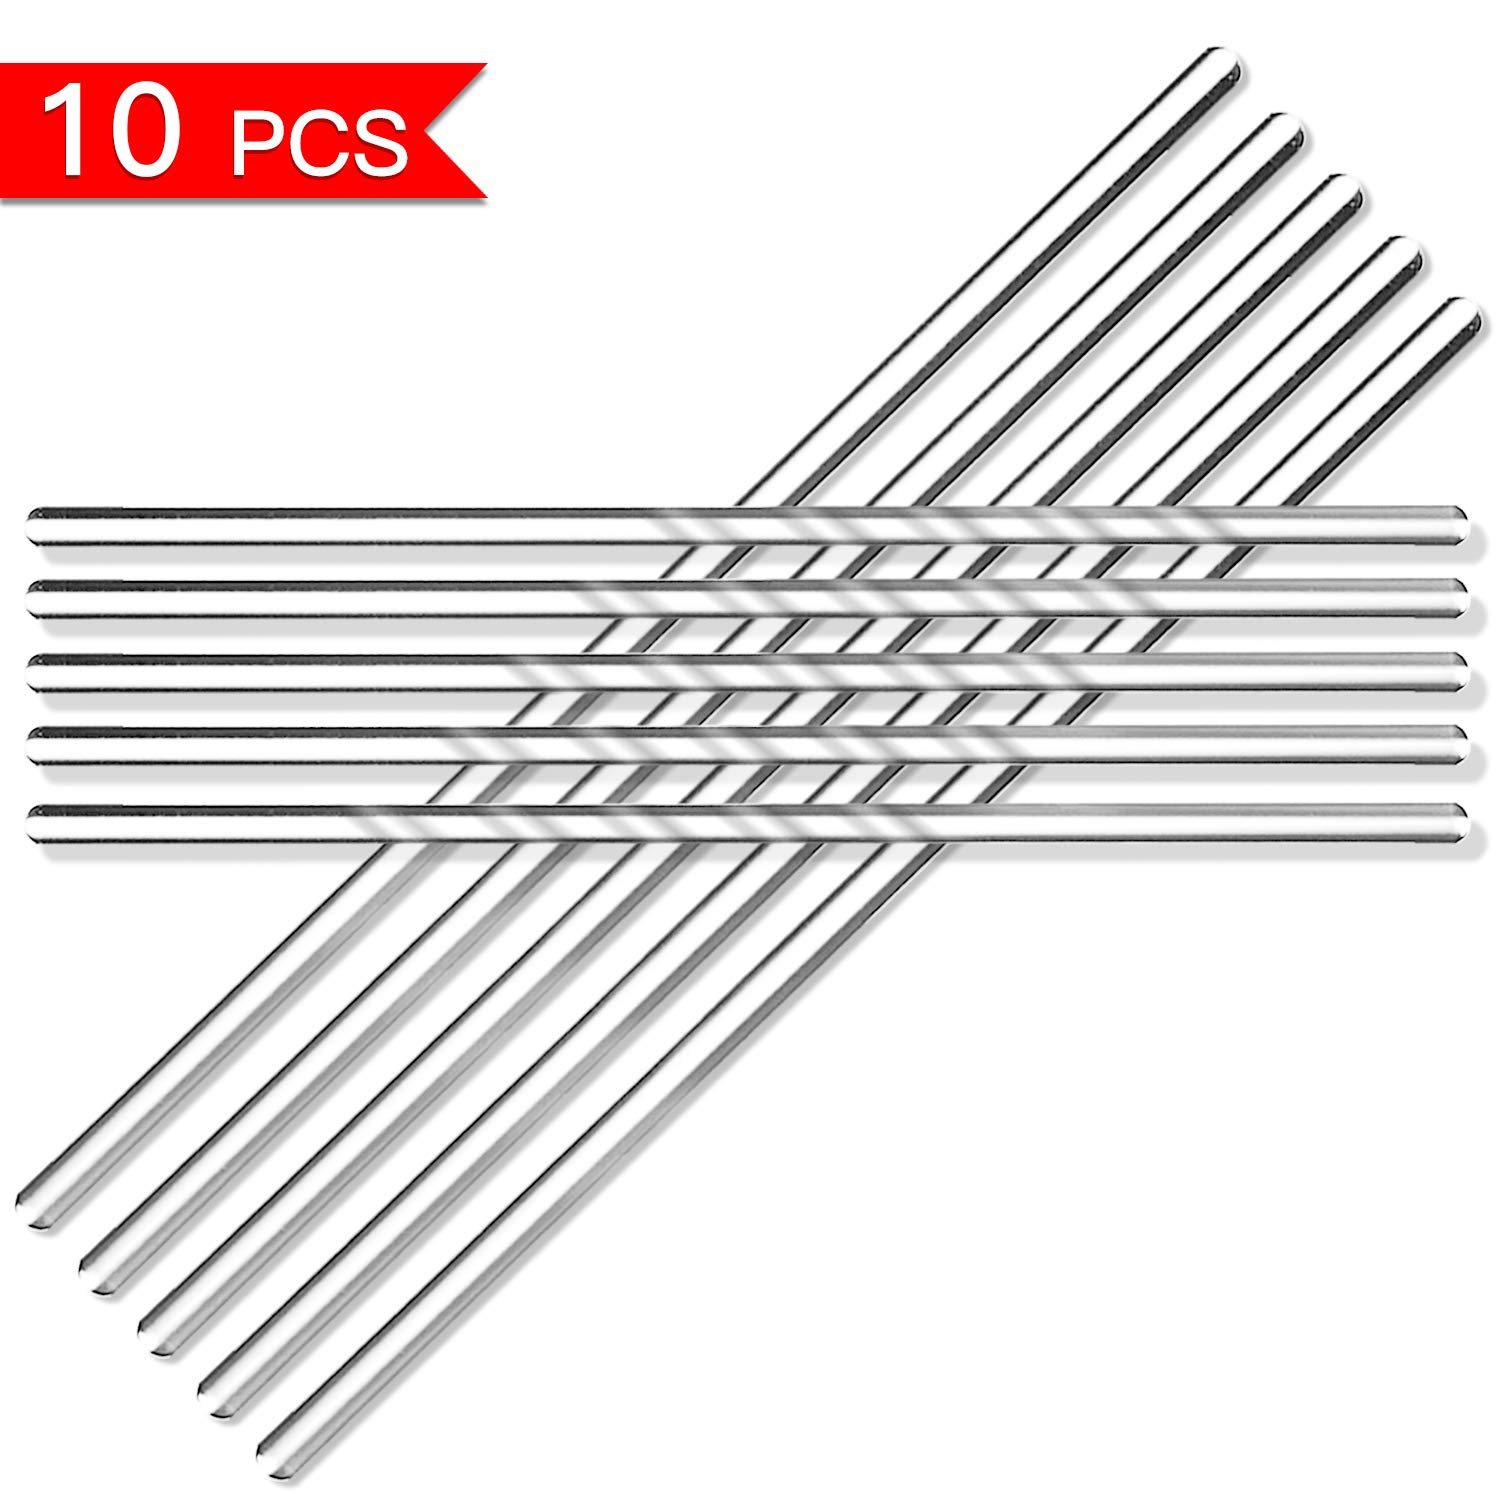 UKCOCO 10PCS Glass Rod Stirrer Glass Stir Sticks Stirring Rod for Hot Beverages Cold Beverages Cocktails Drinks Mixtures